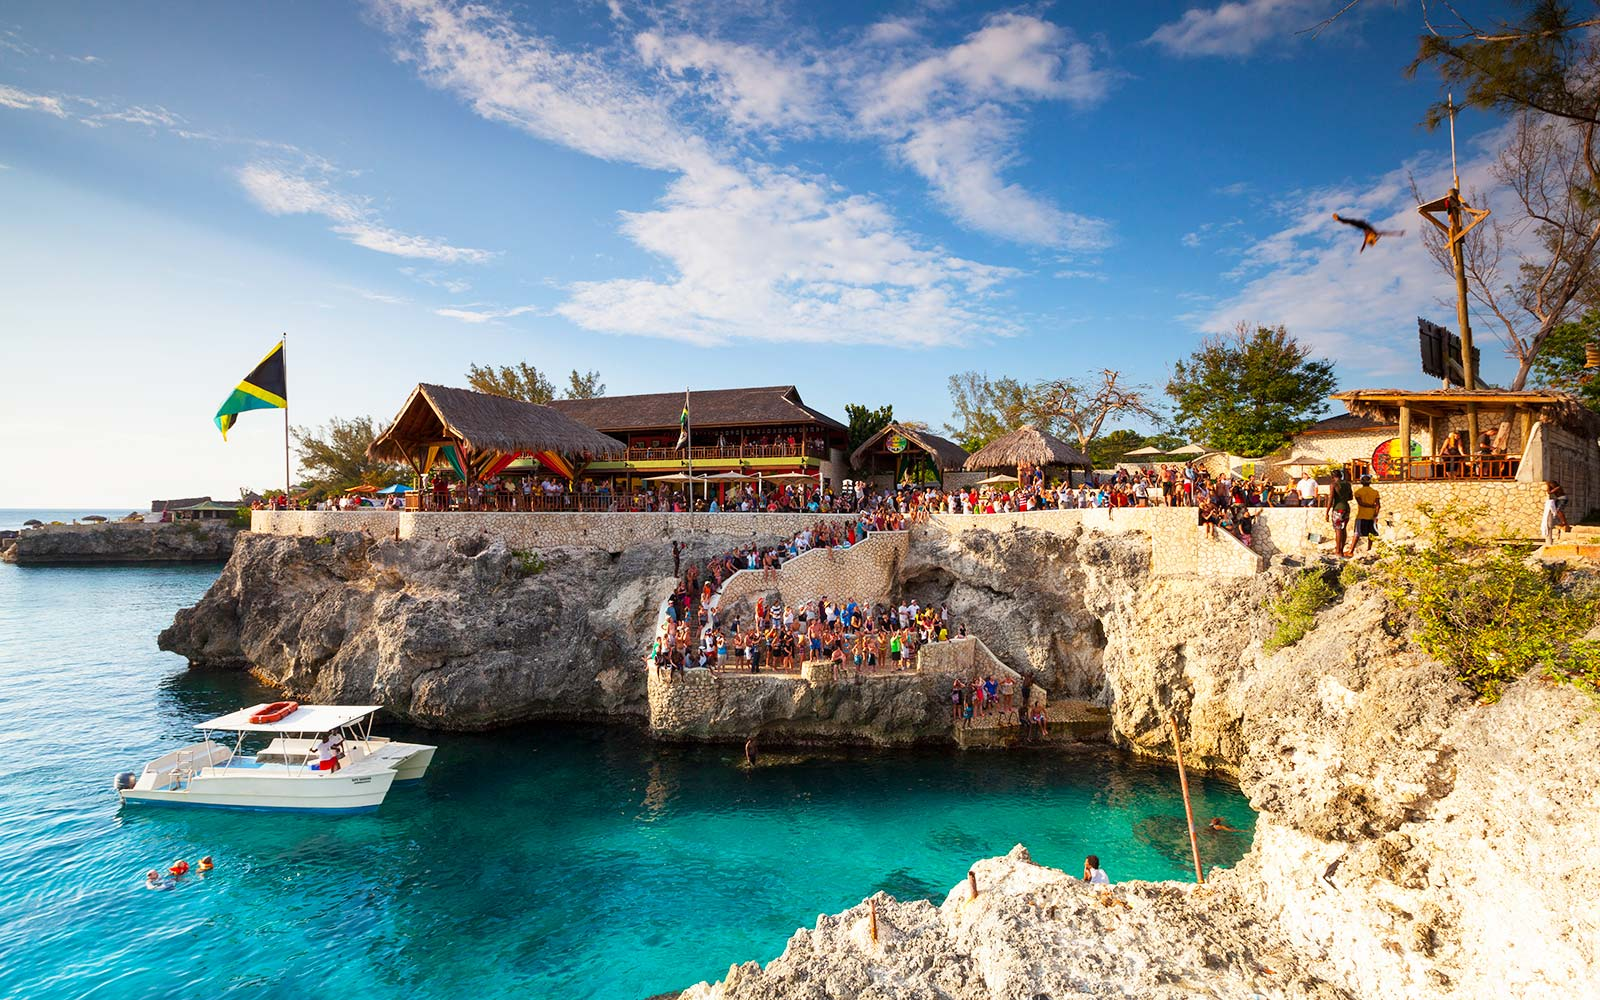 Rick's Cafe Drink Bar Restaurant Cliff Diving Negril Jamaica Caribbean